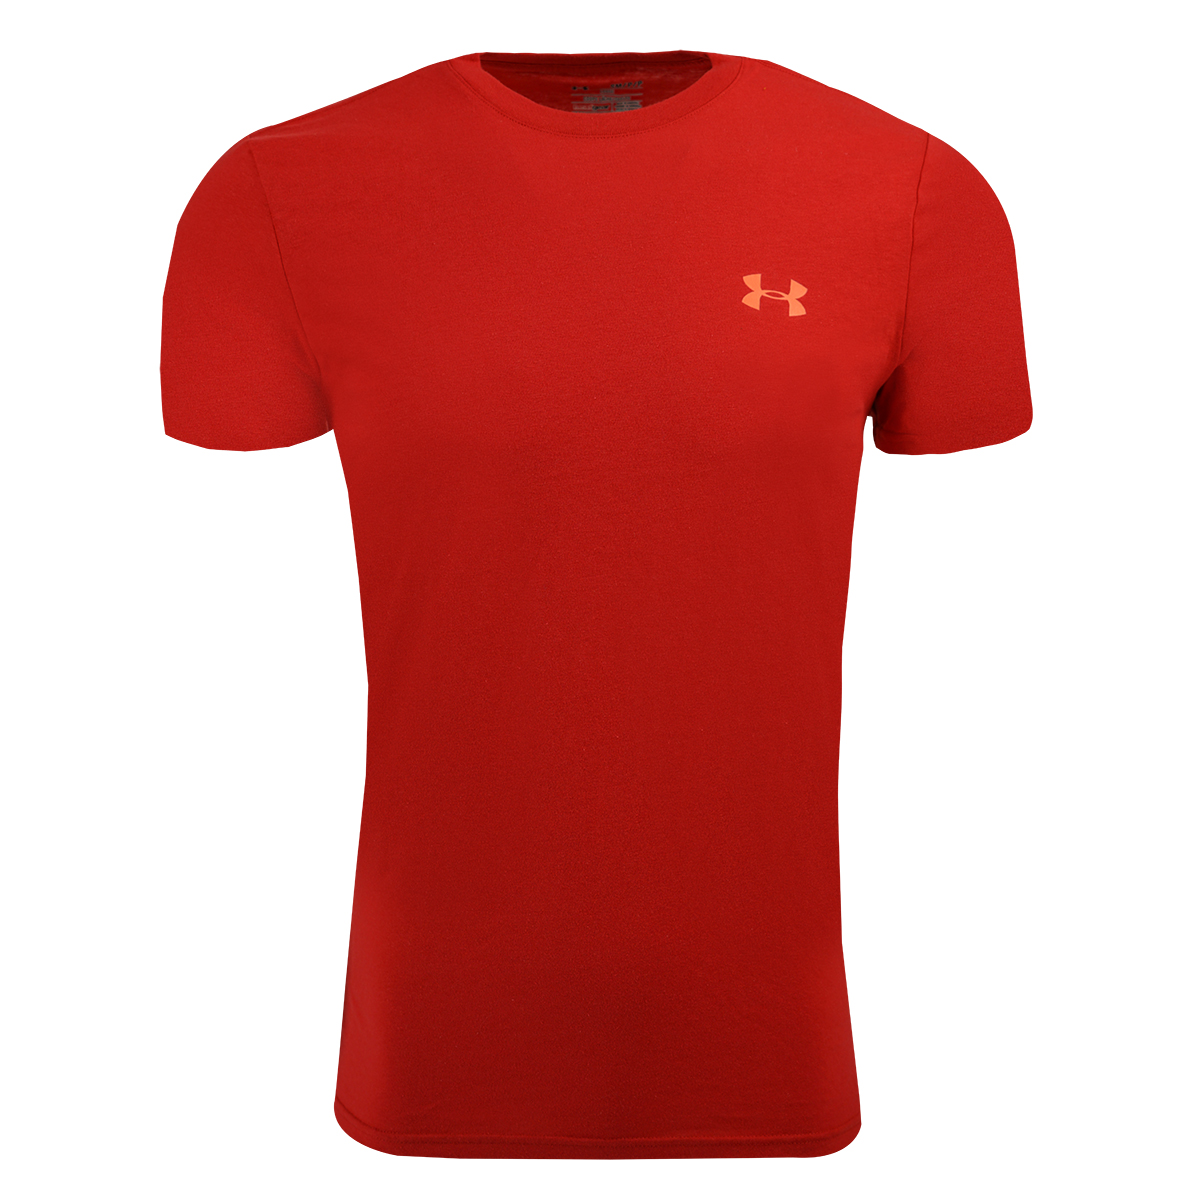 Under-Armour-Men-039-s-UA-Tech-T-Shirt thumbnail 65